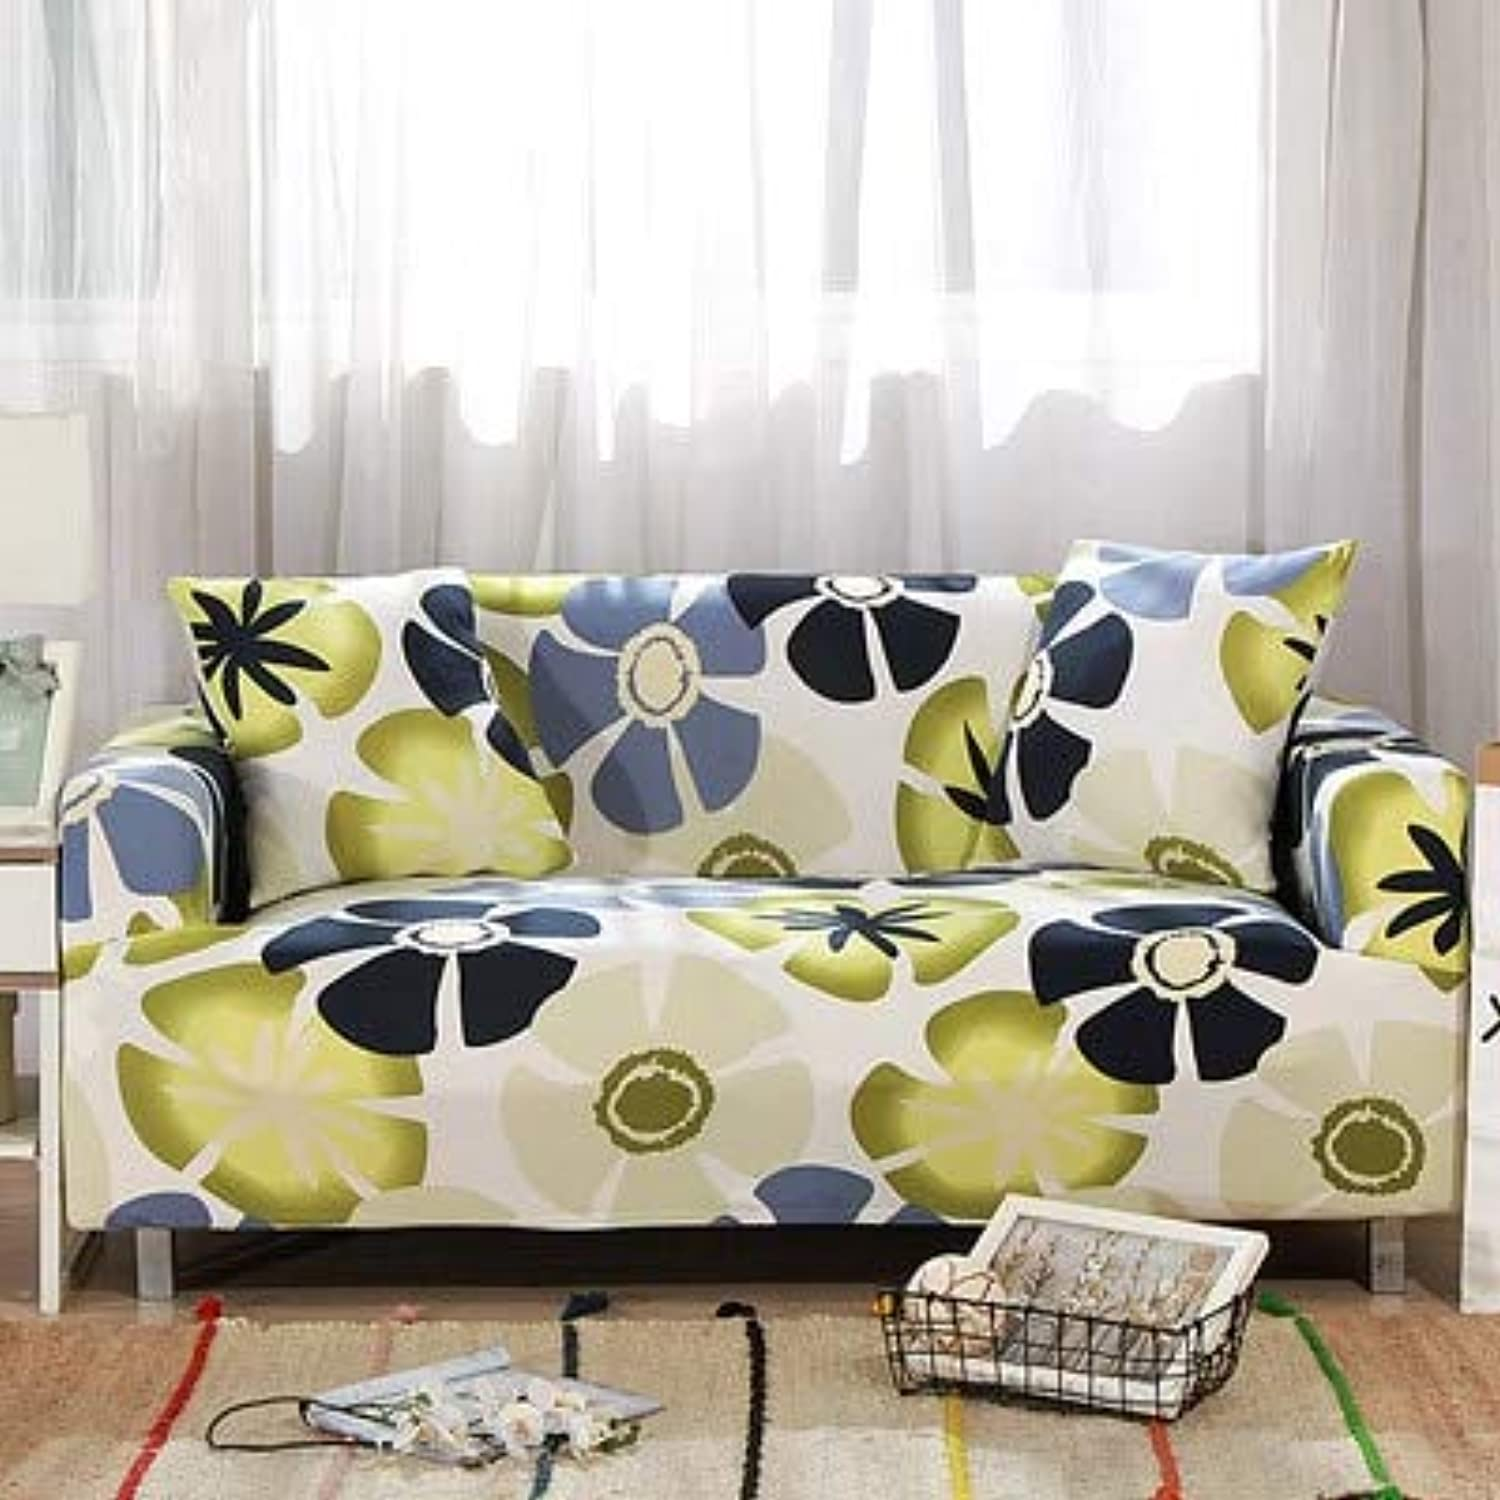 Leaves Pattern Sofa Covers Elastic Stretch Universal Sectional Throw Couch Corner Cover Cases for Furniture Armchairs Home Deco   15, Single seat Sofa